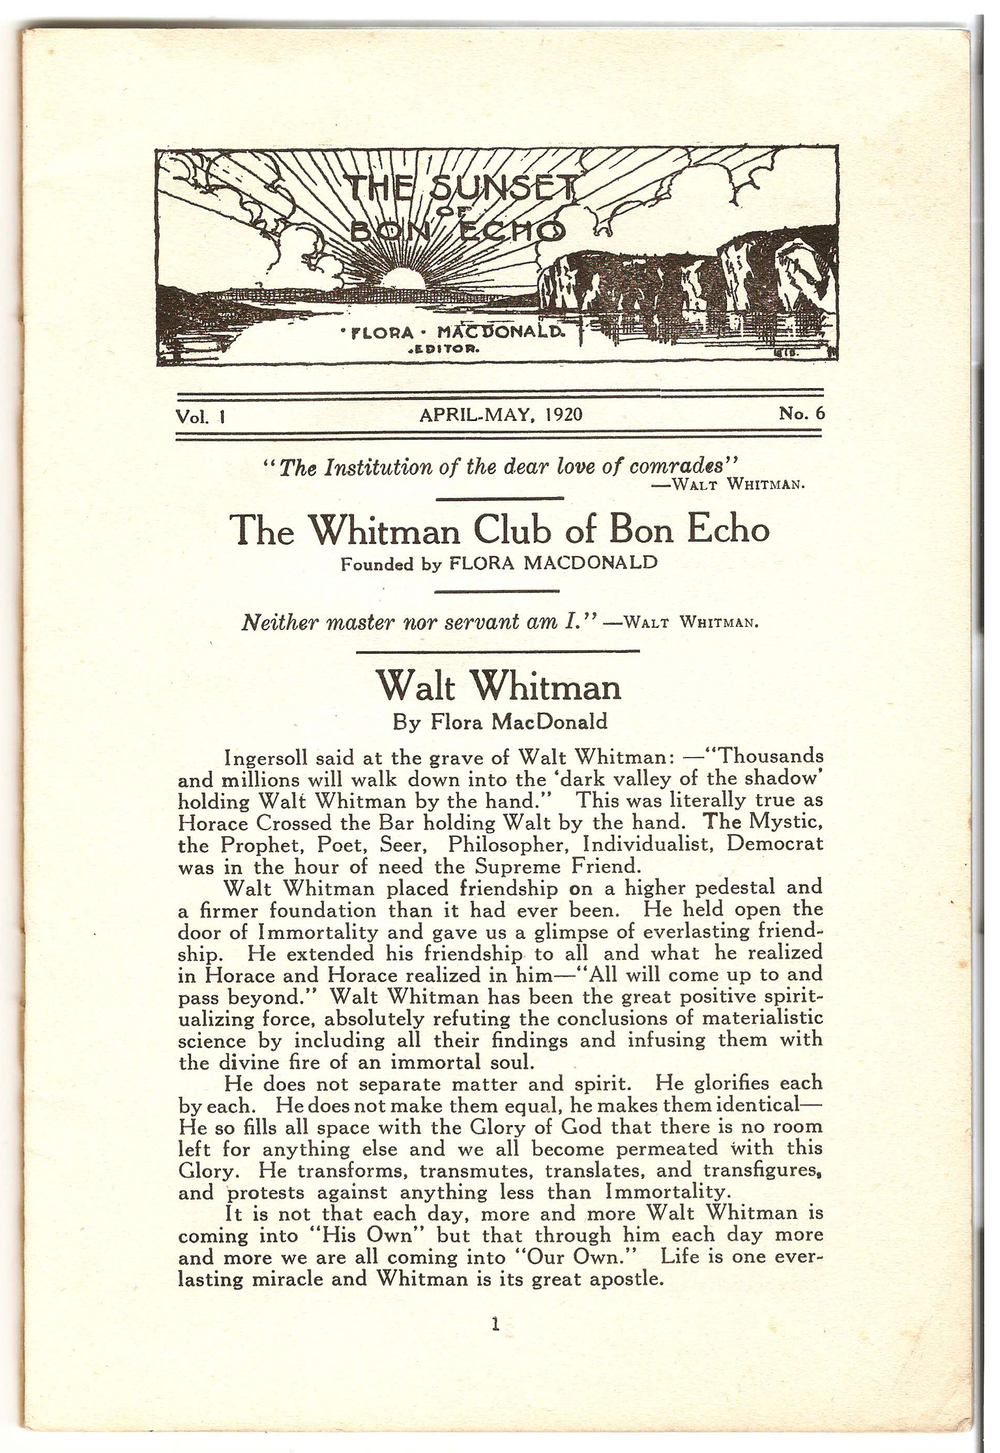 Page 1 of the official journal of The Whitman Club of Bon Echo, as published in the spring 1920 edition of  The Sunset of Bon Echo .